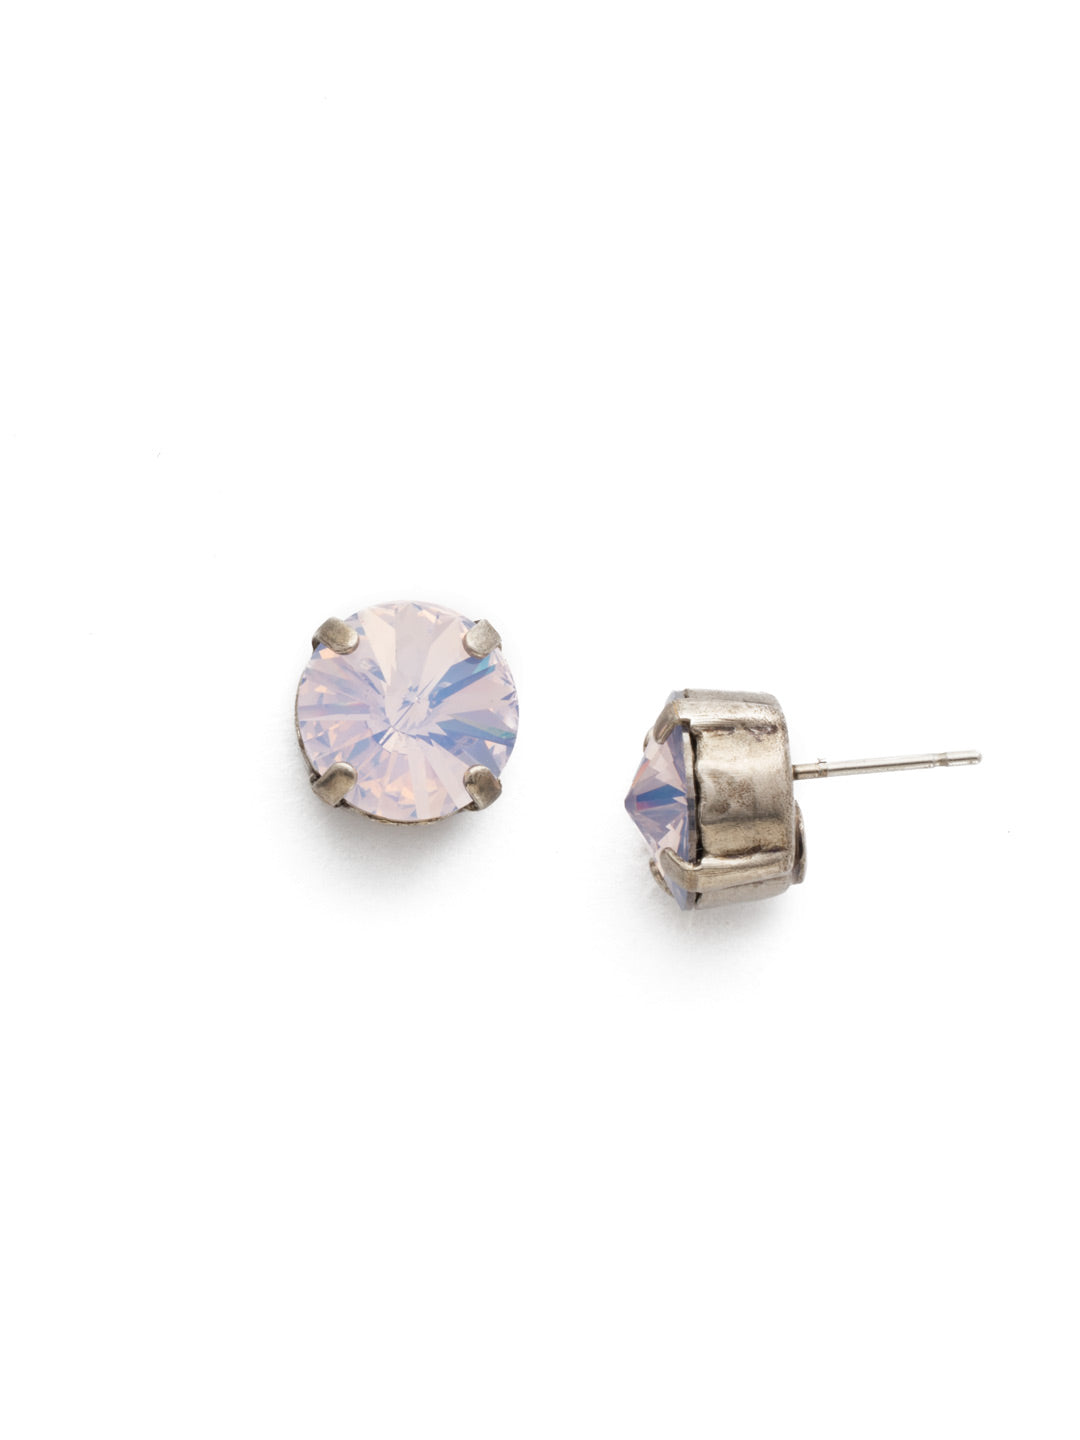 Round Crystal Stud Earring - ECM14ASROW